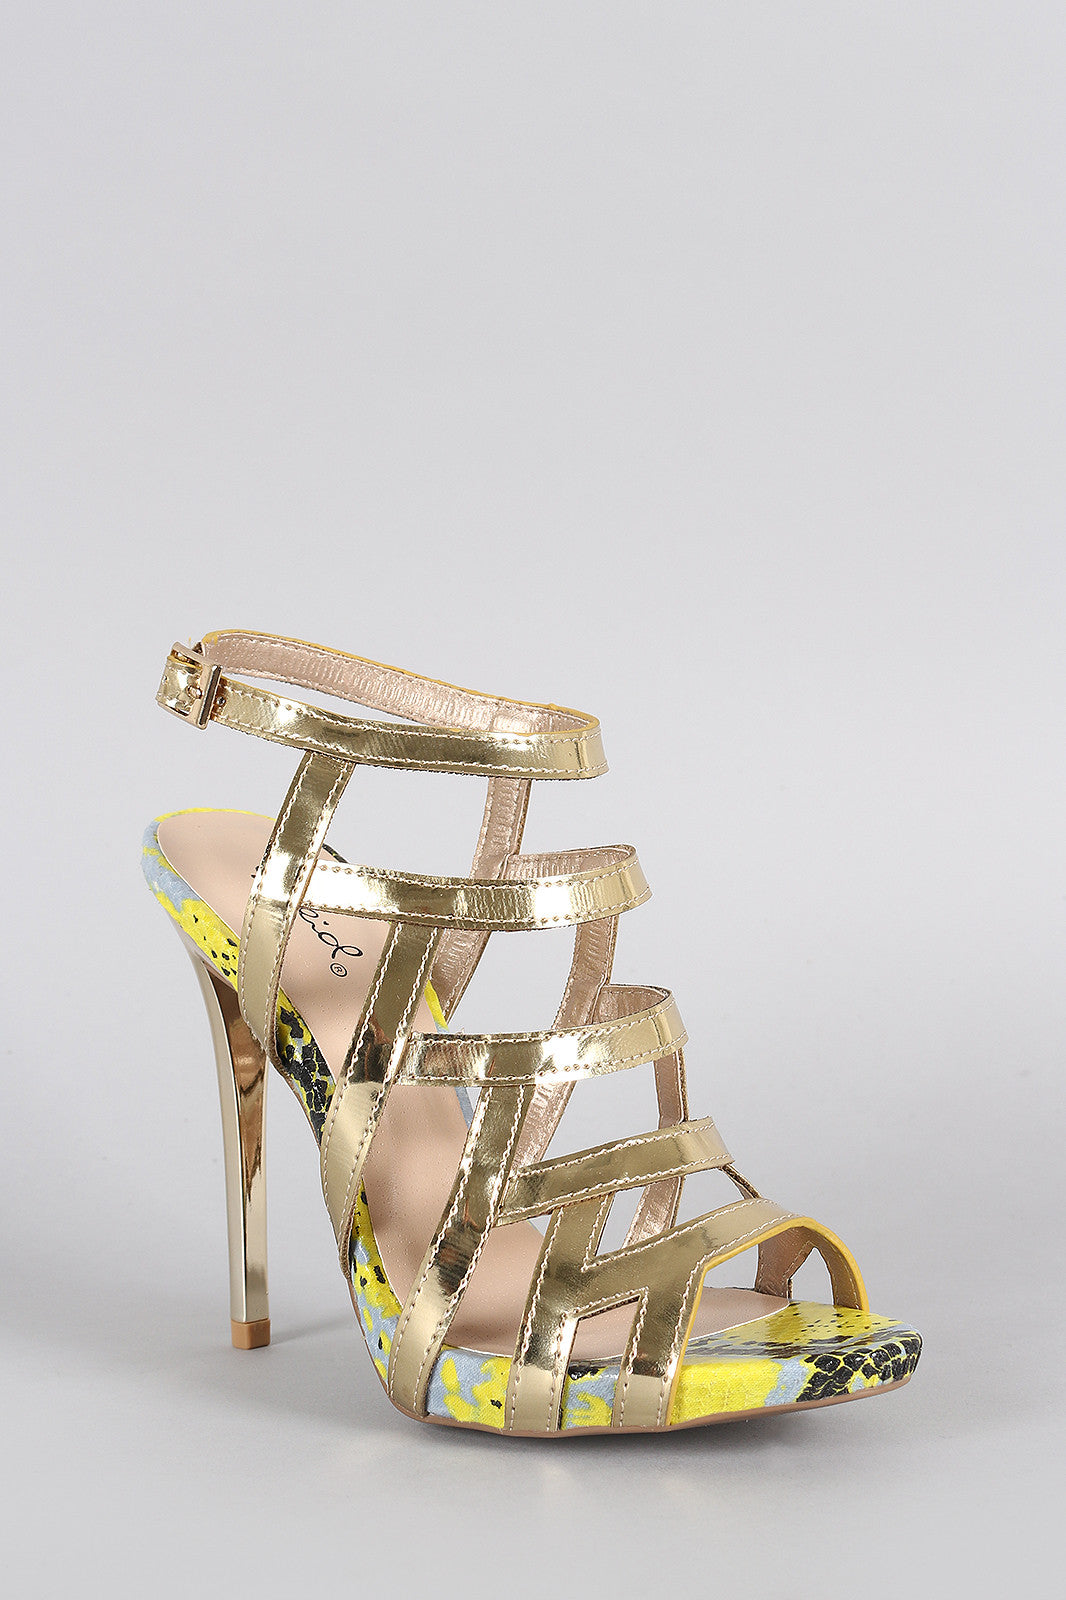 Qupid Metallic Strappy Snake Open Toe Stiletto Heel - Thick 'N' Curvy Shop - 2